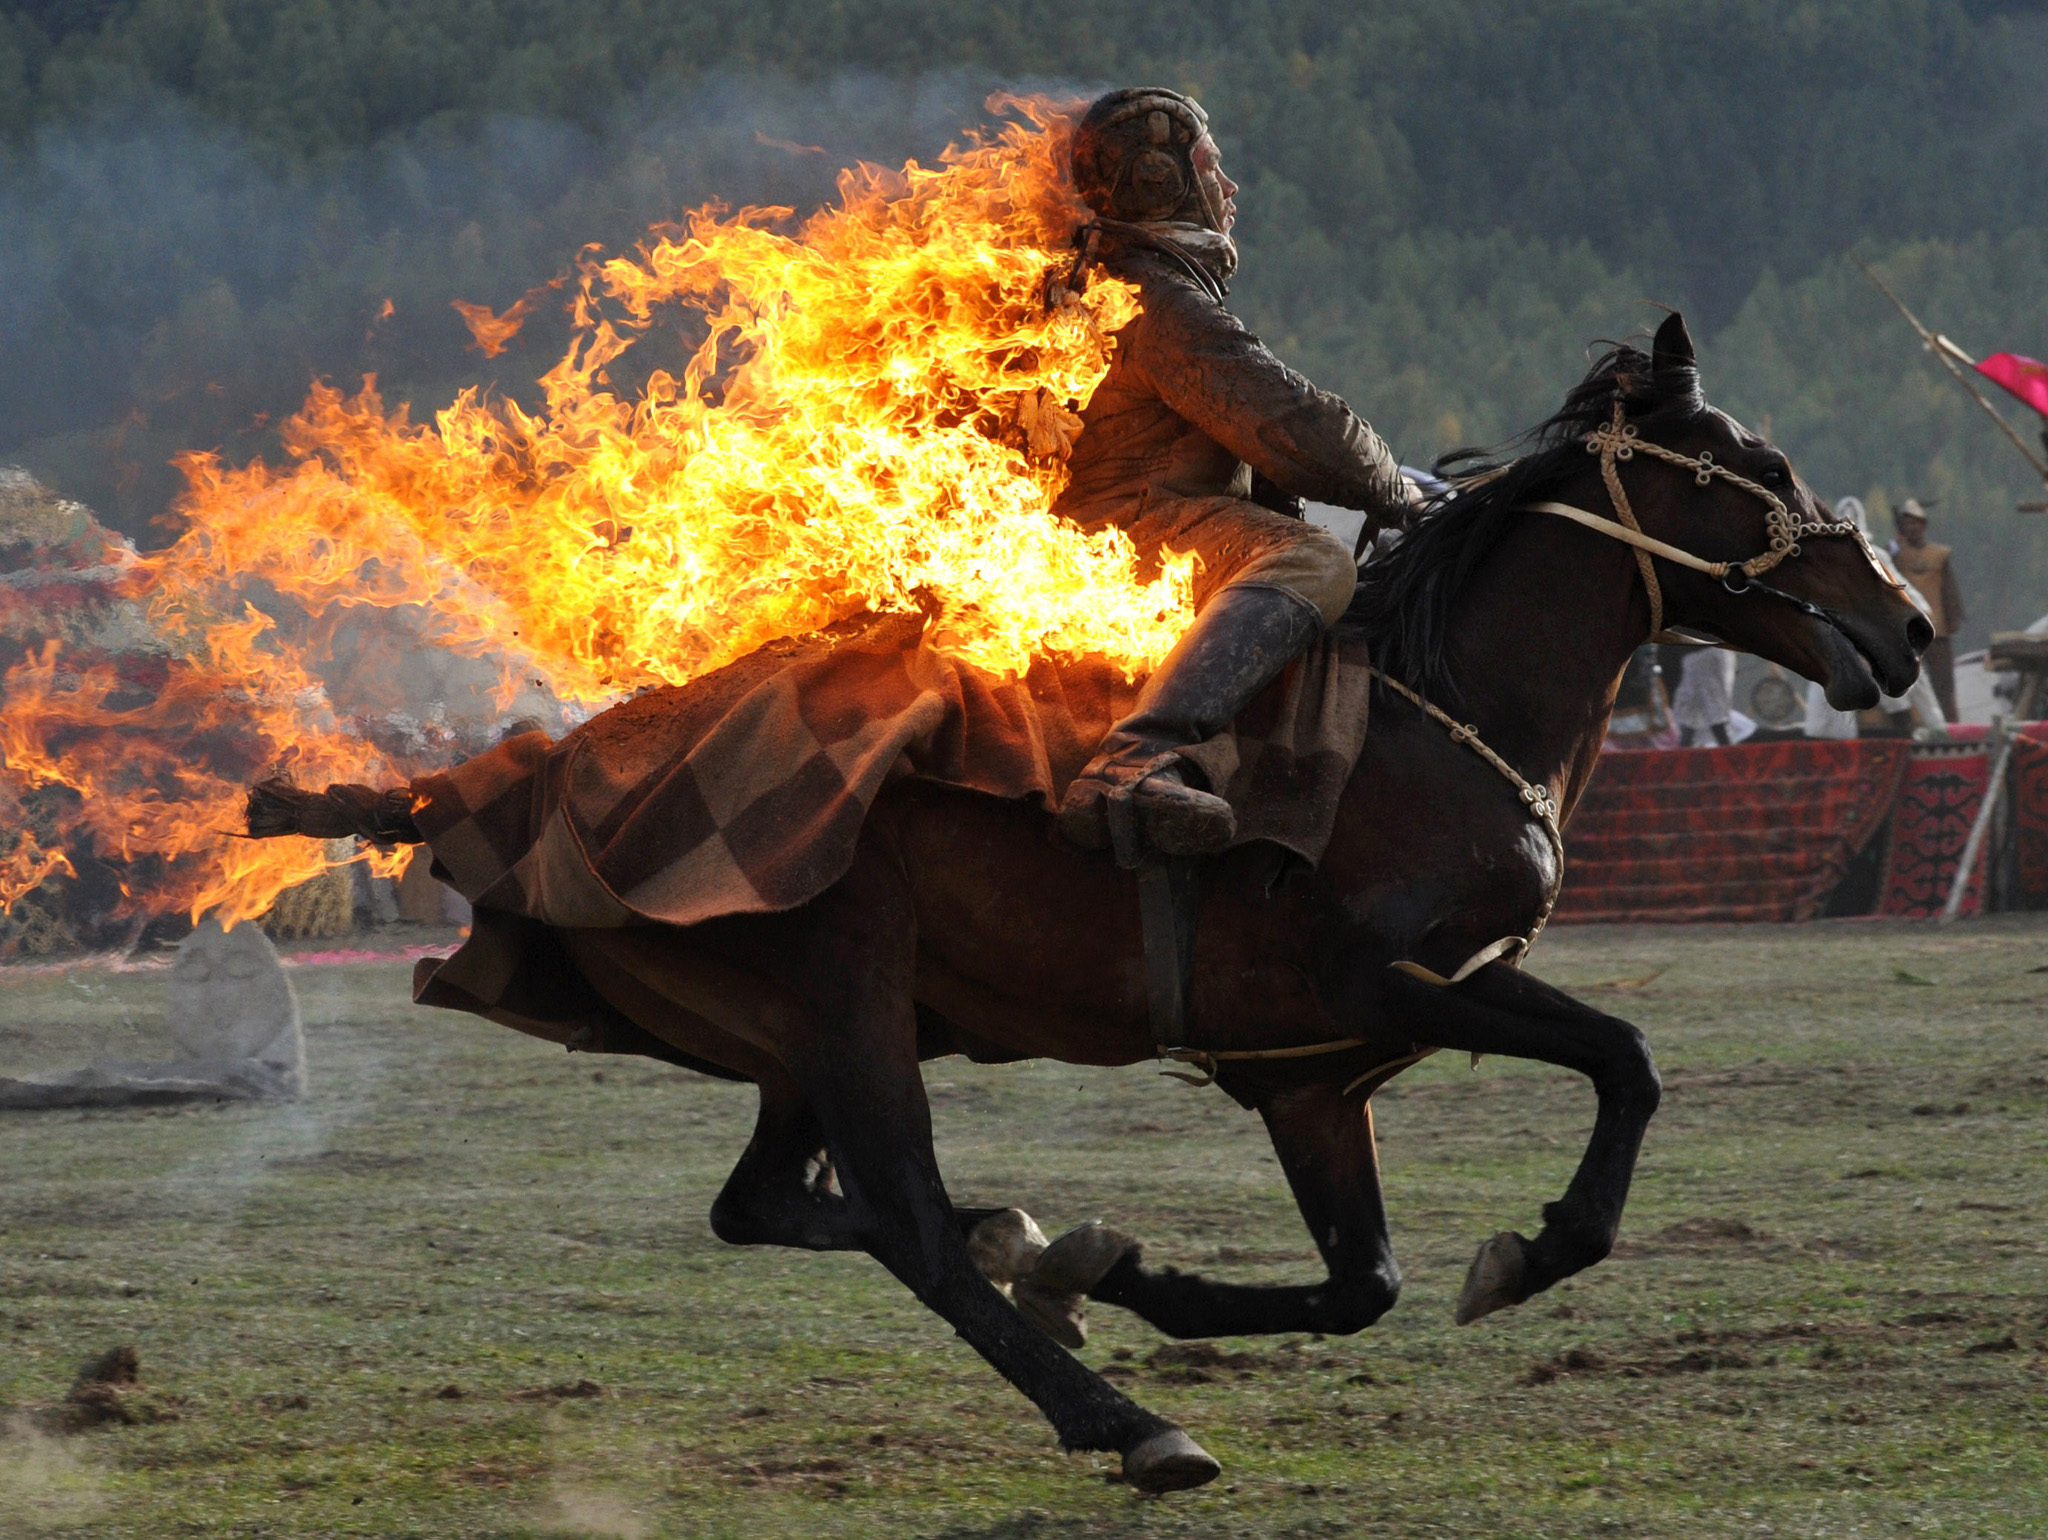 hoto taken on September 10, 2014 shows a Kyrgyz stuntman performing during the first World Nomad Games in the Kyrchin (Semenovskoe) gorge, some 300 km from Bishkek. Teams of Azerbaijan, Kazakhstan, Belarus, Mongolia and Tajikistan take part in the games. AFP PHOTO / VYACHESLAV OSELEDKOVYACHESLAV OSELEDKO/AFP/Getty Images